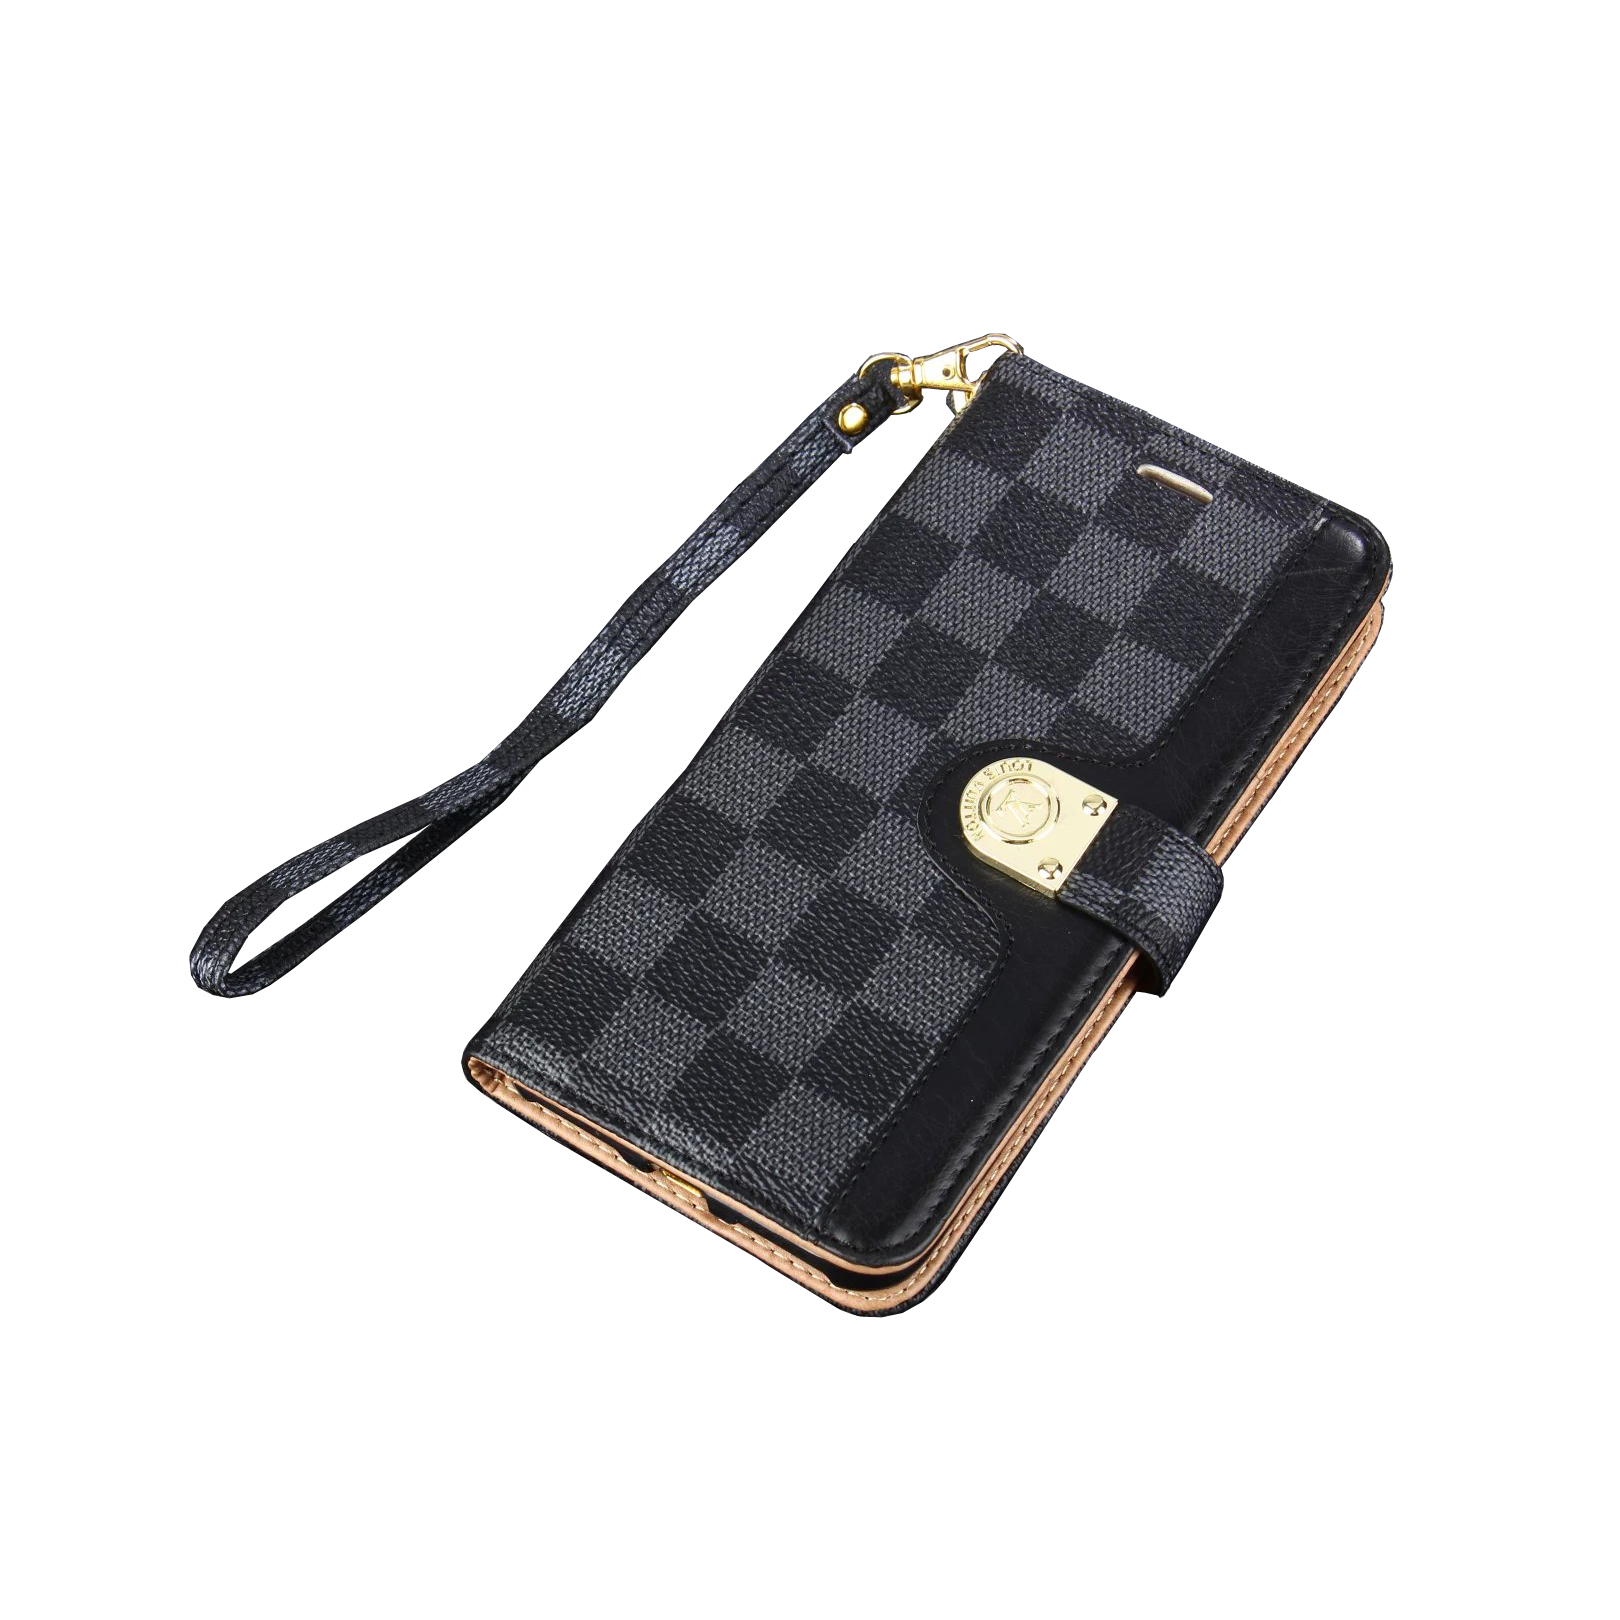 Note8 best case cheap cases for galaxy Note8 Louis Vuitton Galaxy Note8 case samsung Note8 view cover Note8 galaxy accessories samsung galaxy Note8 survivor case samsung galaxy case wallet glaxsy Note8 samsung galaxy Note8 cases